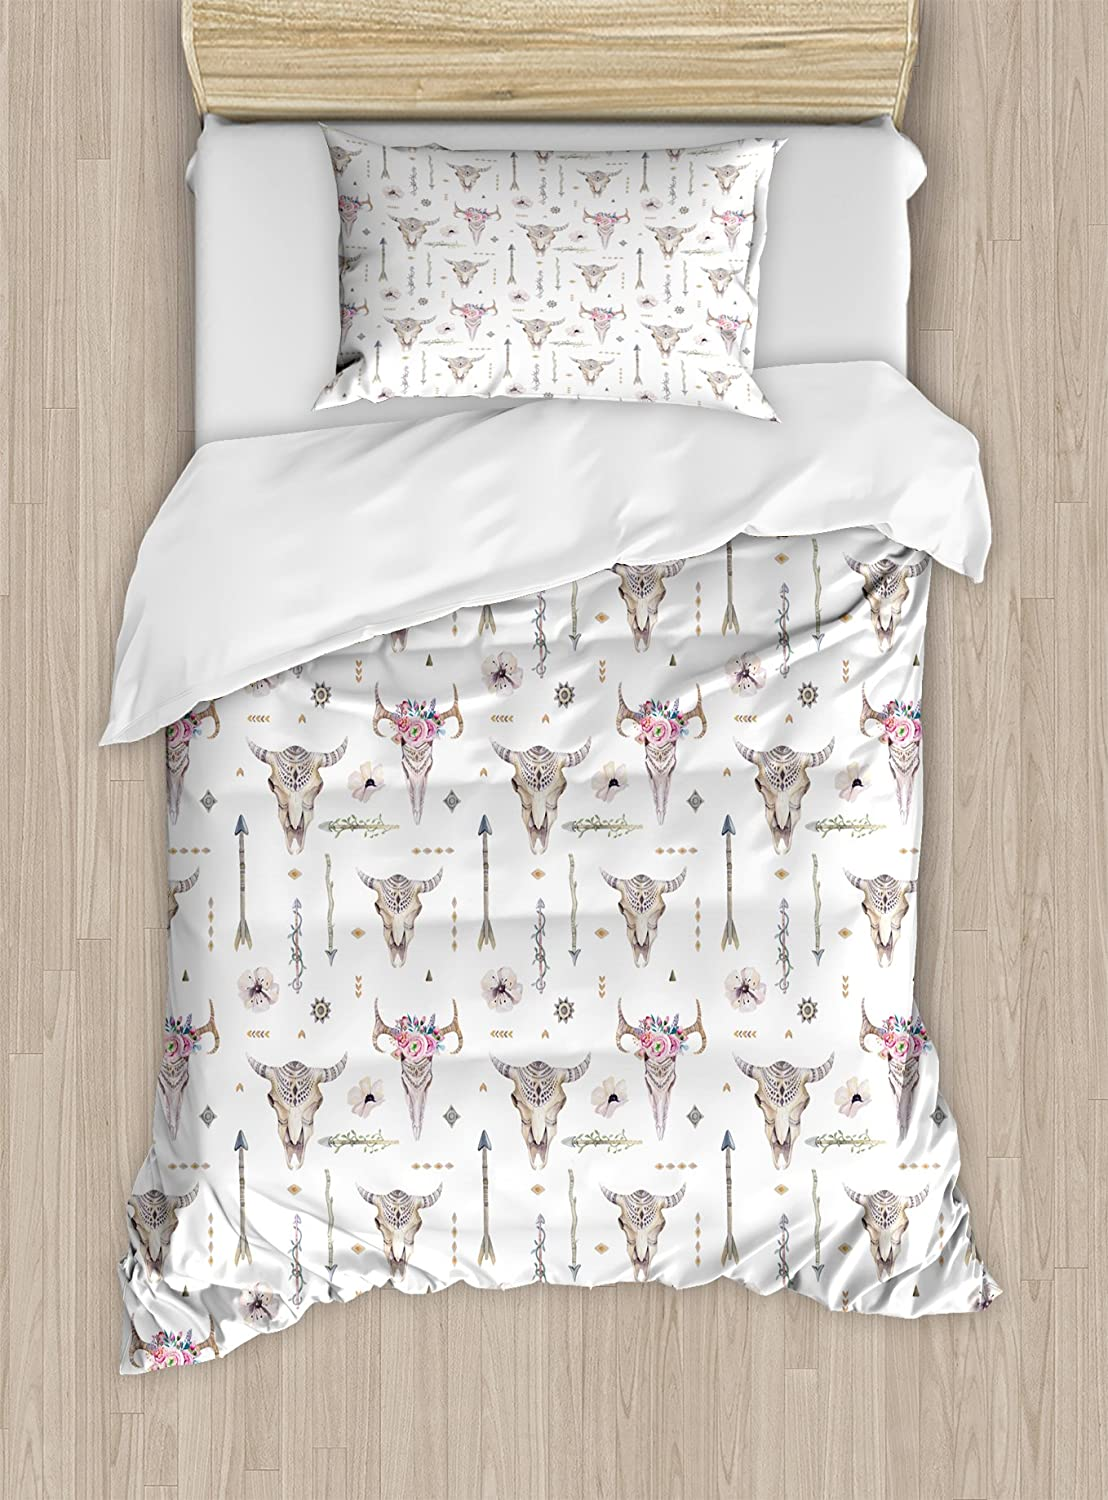 Ambesonne Arrows Duvet Cover Set Twin Size, Boho Pattern Artwork with Arrows Feathers Cow Skulls Rustic Theme Artwork, Decorative 2 Piece Bedding Set with 1 Pillow Sham, White Ivory Pink